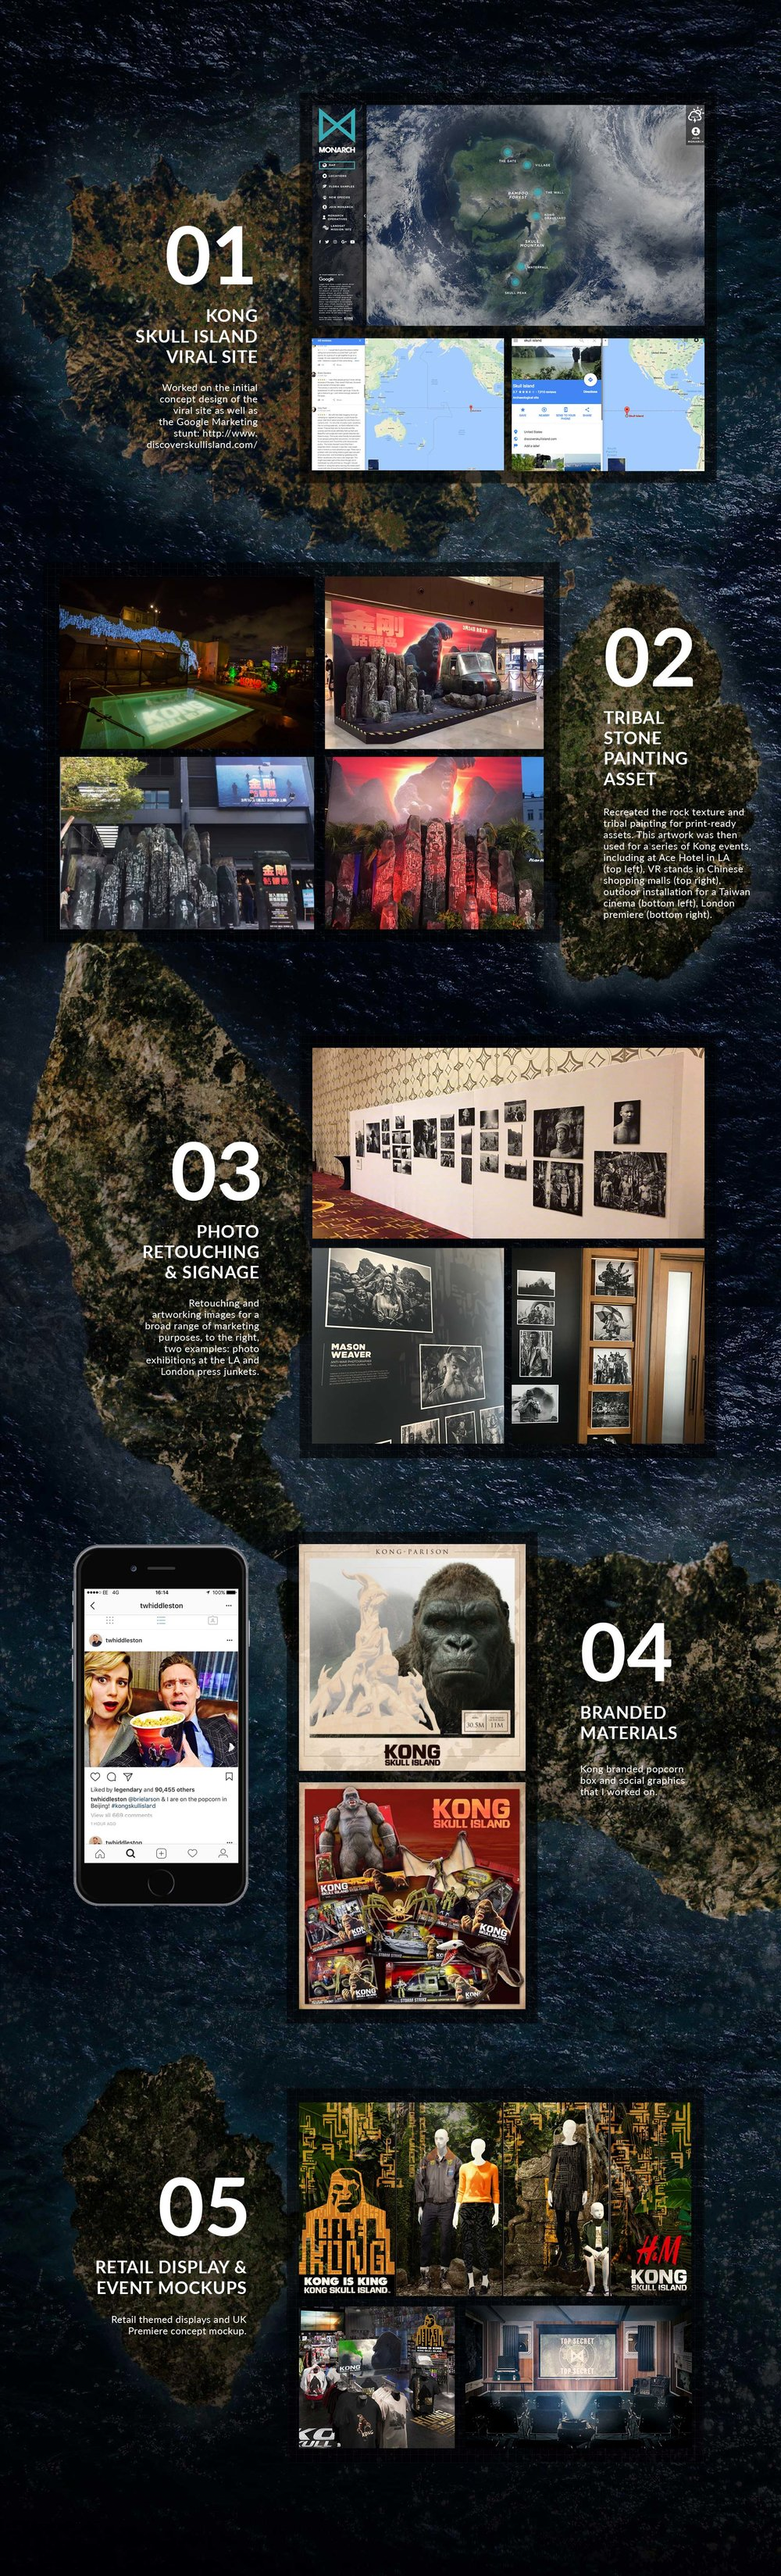 OLIVE_Film_marketing_folio_KONG-v2.jpg